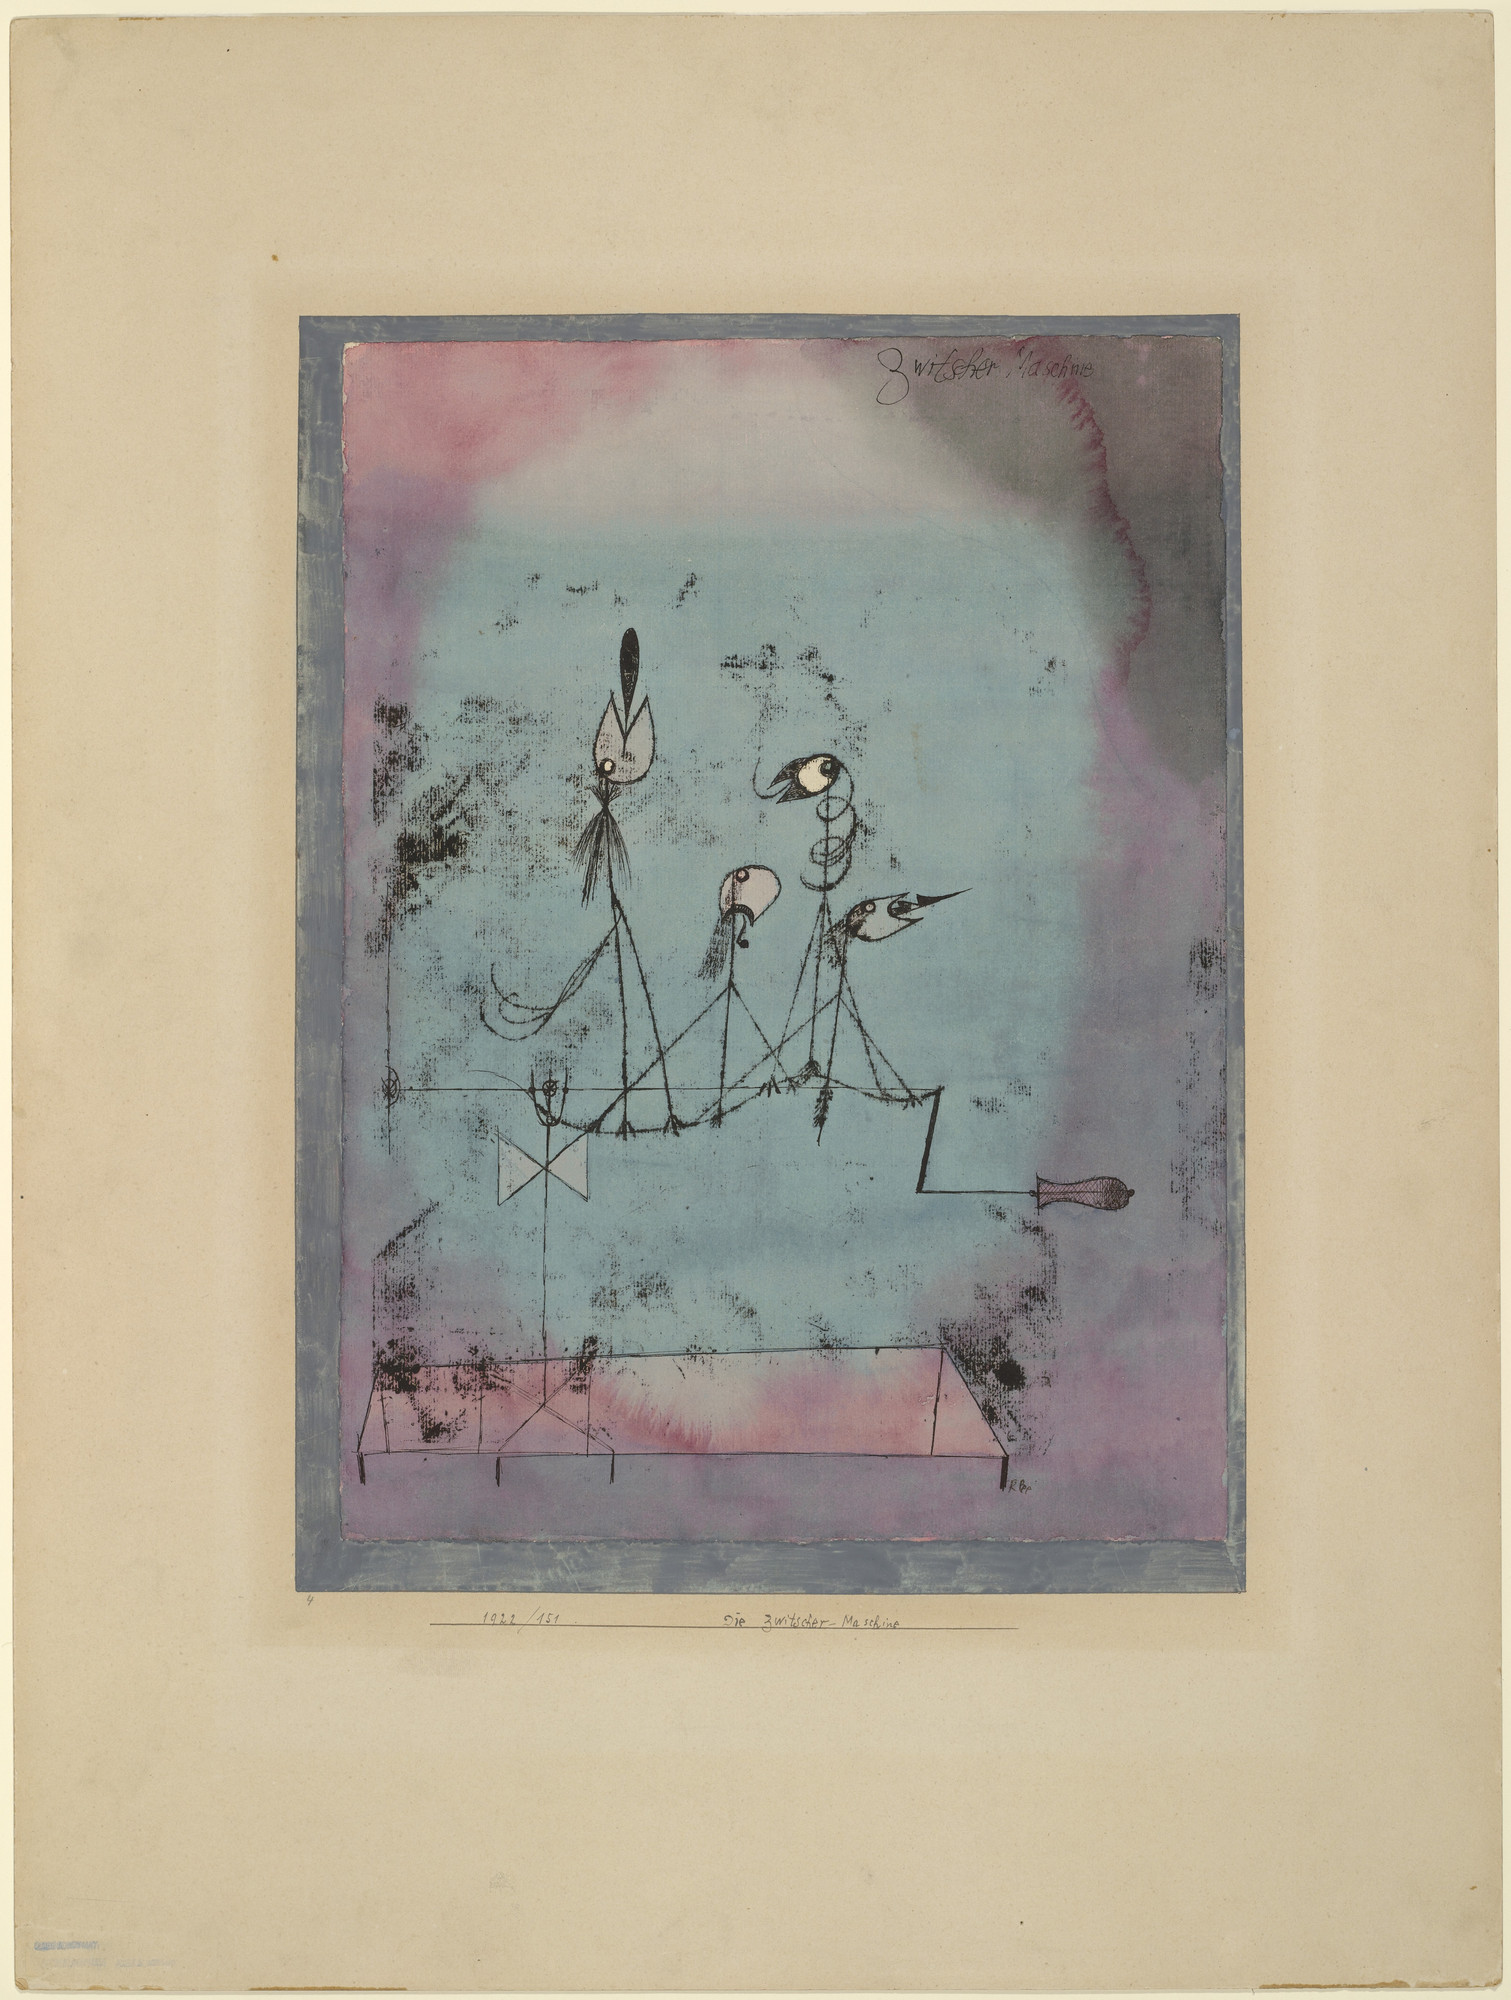 Paul Klee. Twittering Machine (Die Zwitscher-Maschine). 1922